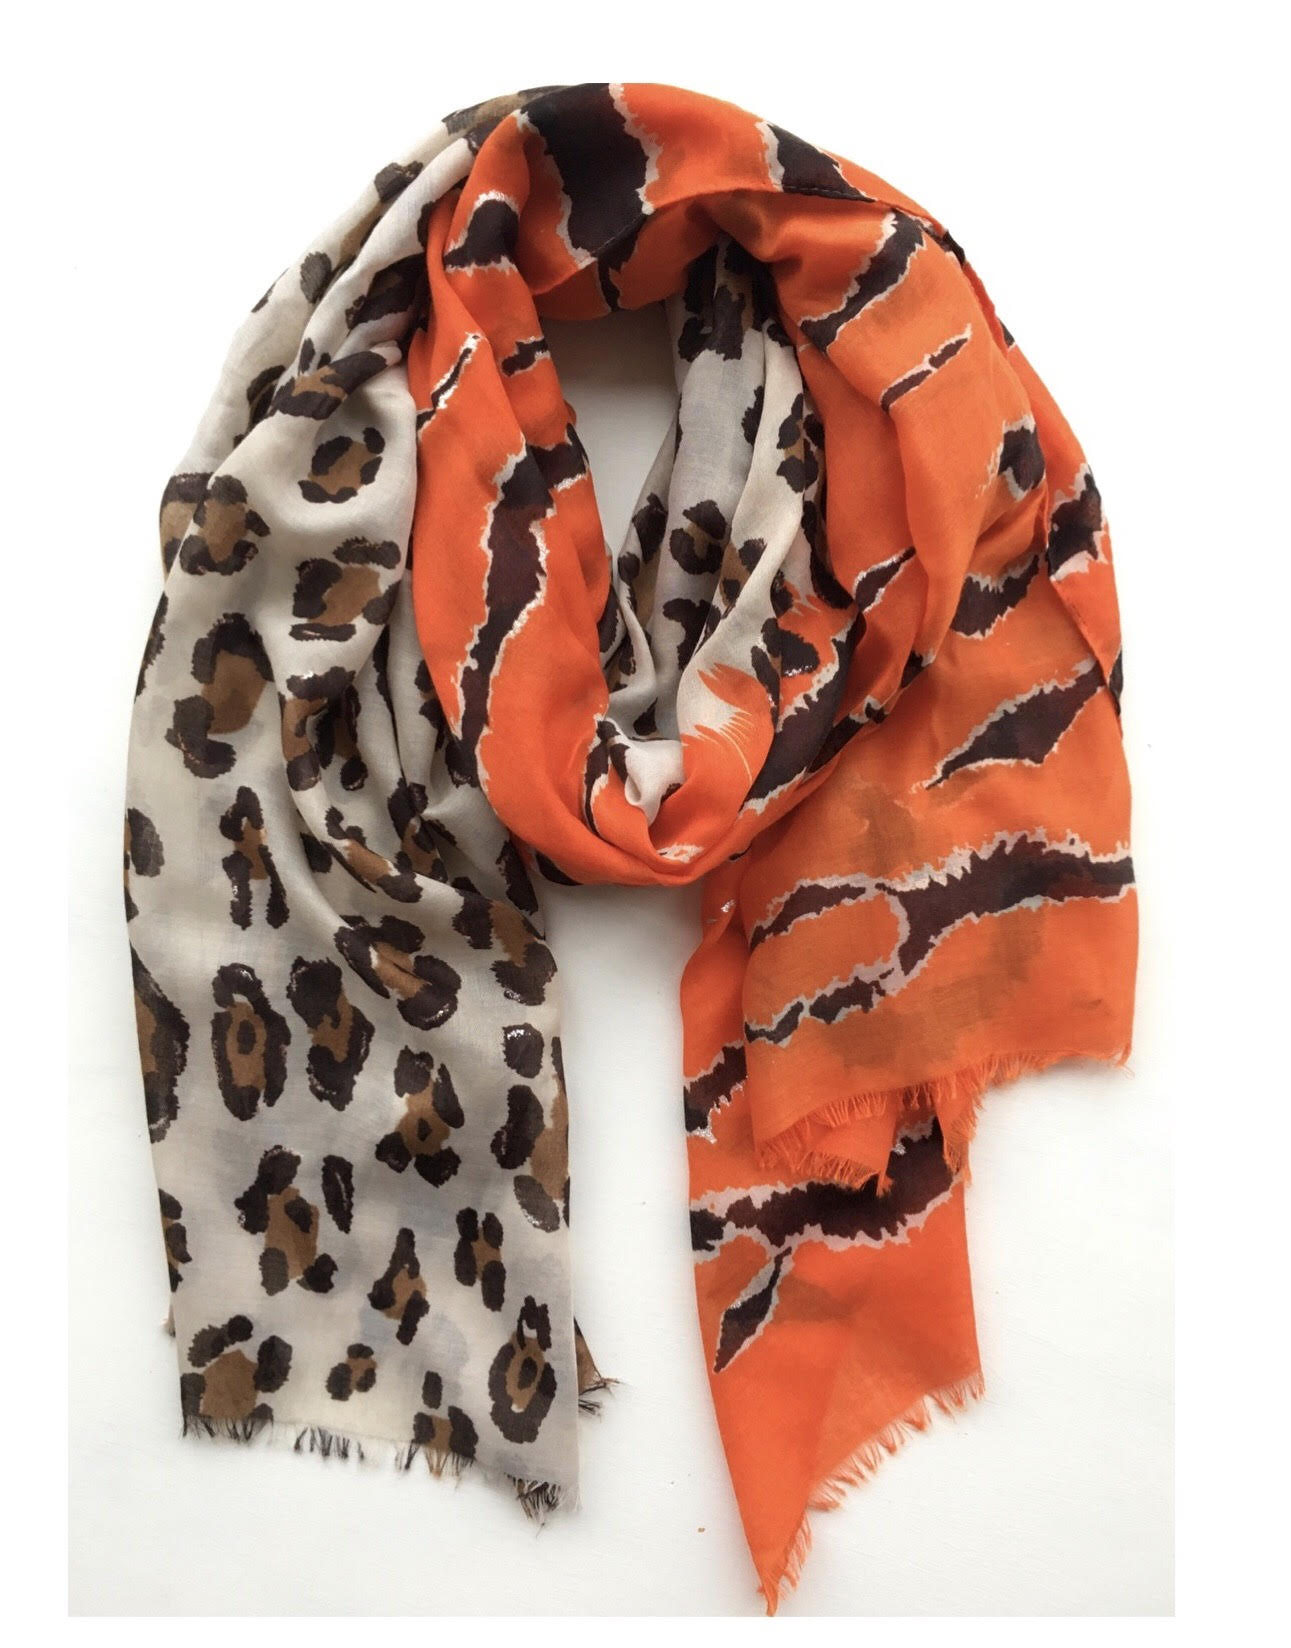 The Siobhan Scarf